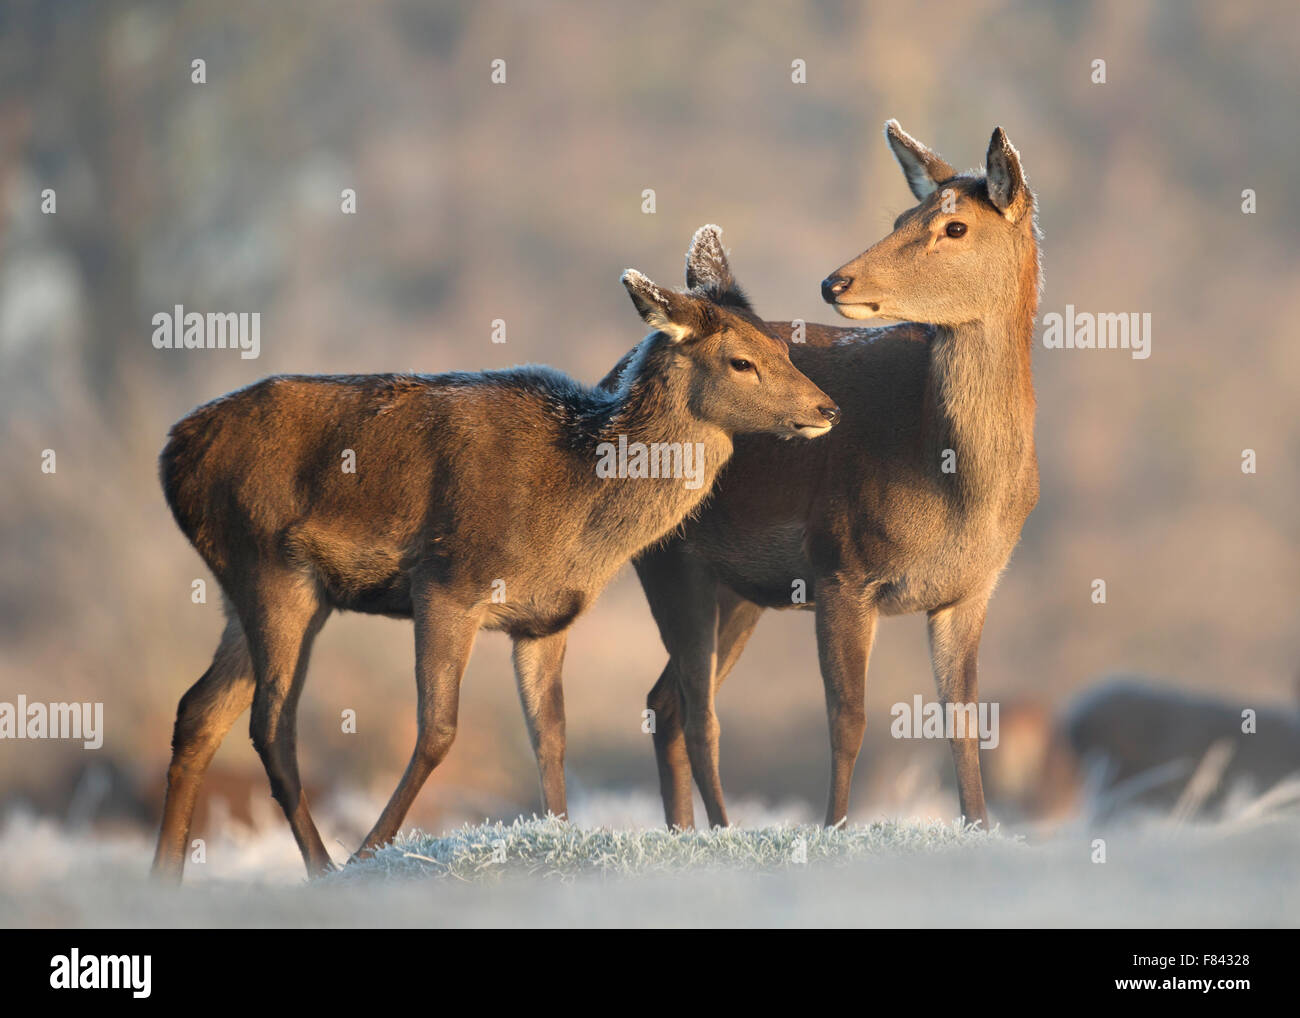 Red deer hind with a calf in winter - Stock Image